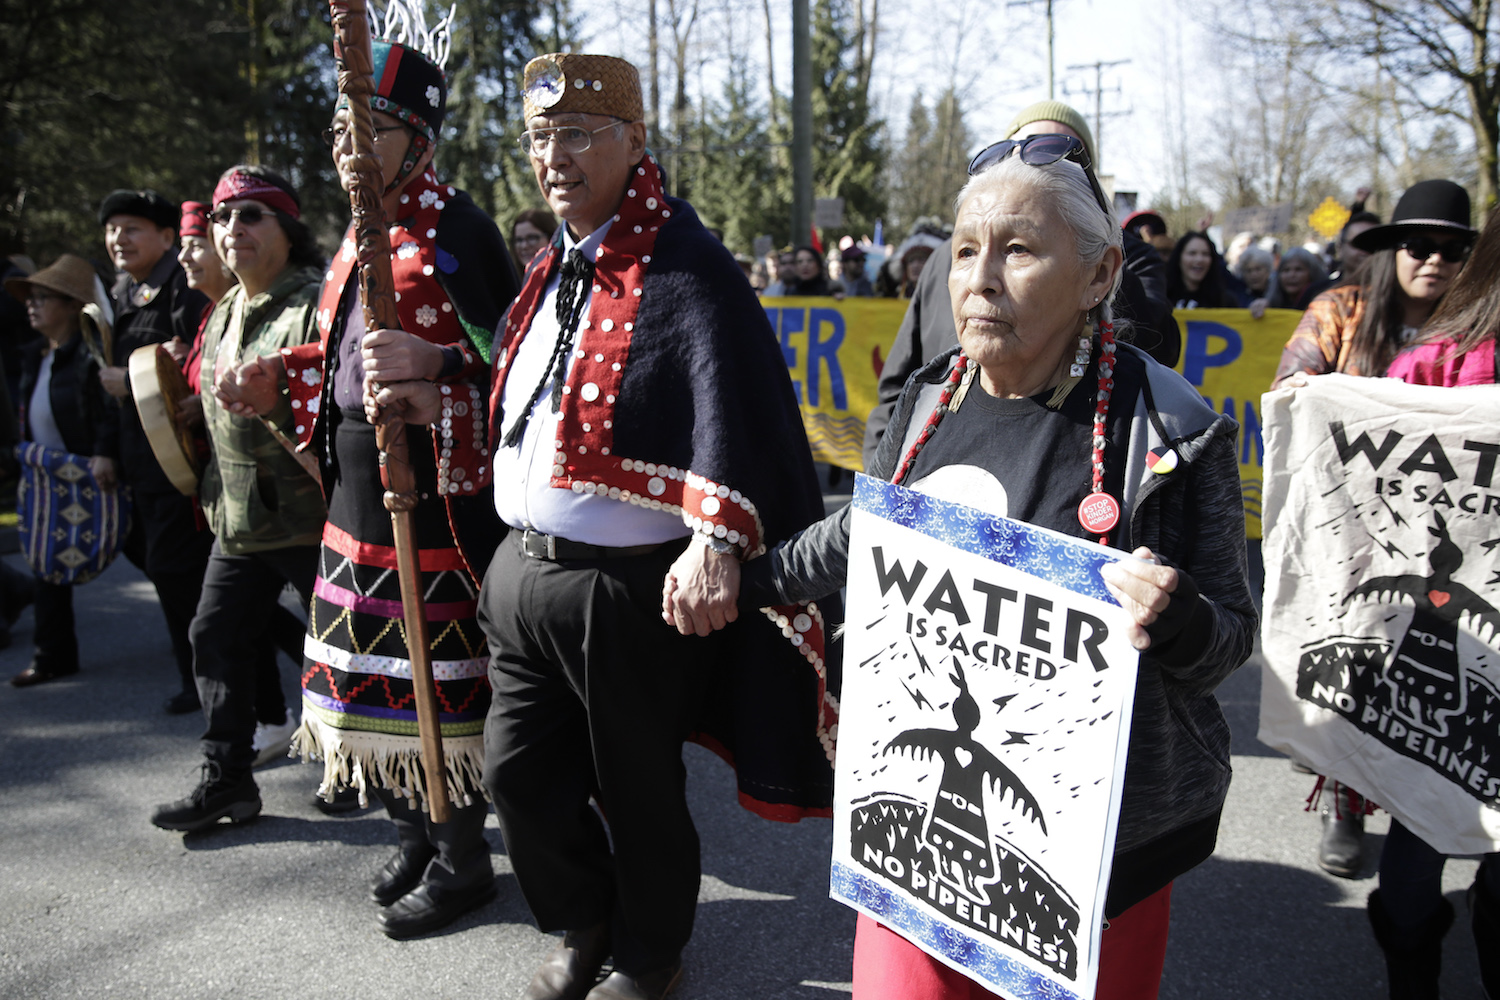 Harriet Prince (r), 76, of the Anishinaabe tribe marches with Coast Salish Water Protectors and others against the expansion of Texas-based Kinder Morgan's Trans Mountain pipeline project in Burnaby, British Columbia, Canada on March 10, 2018.  / AFP PHOTO / Jason Redmond        (Photo credit should read JASON REDMOND/AFP/Getty Images)